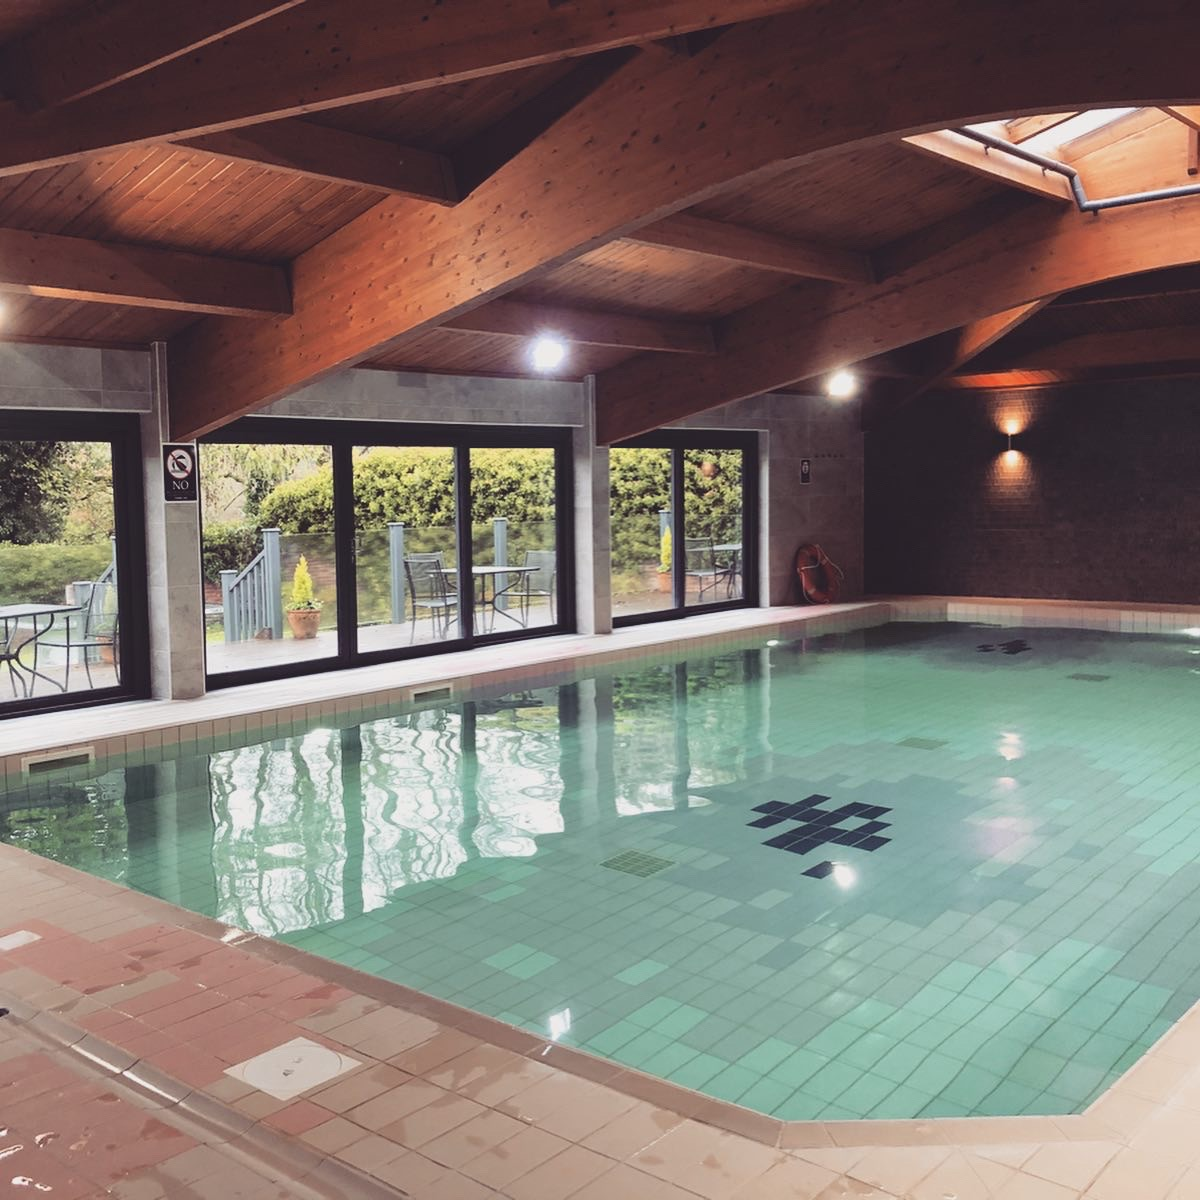 AD: Landal Sandybrook Peak District family review - a relaxing autumnal long weekend break. The heated pool at Landal Sandybrook, Peak District.